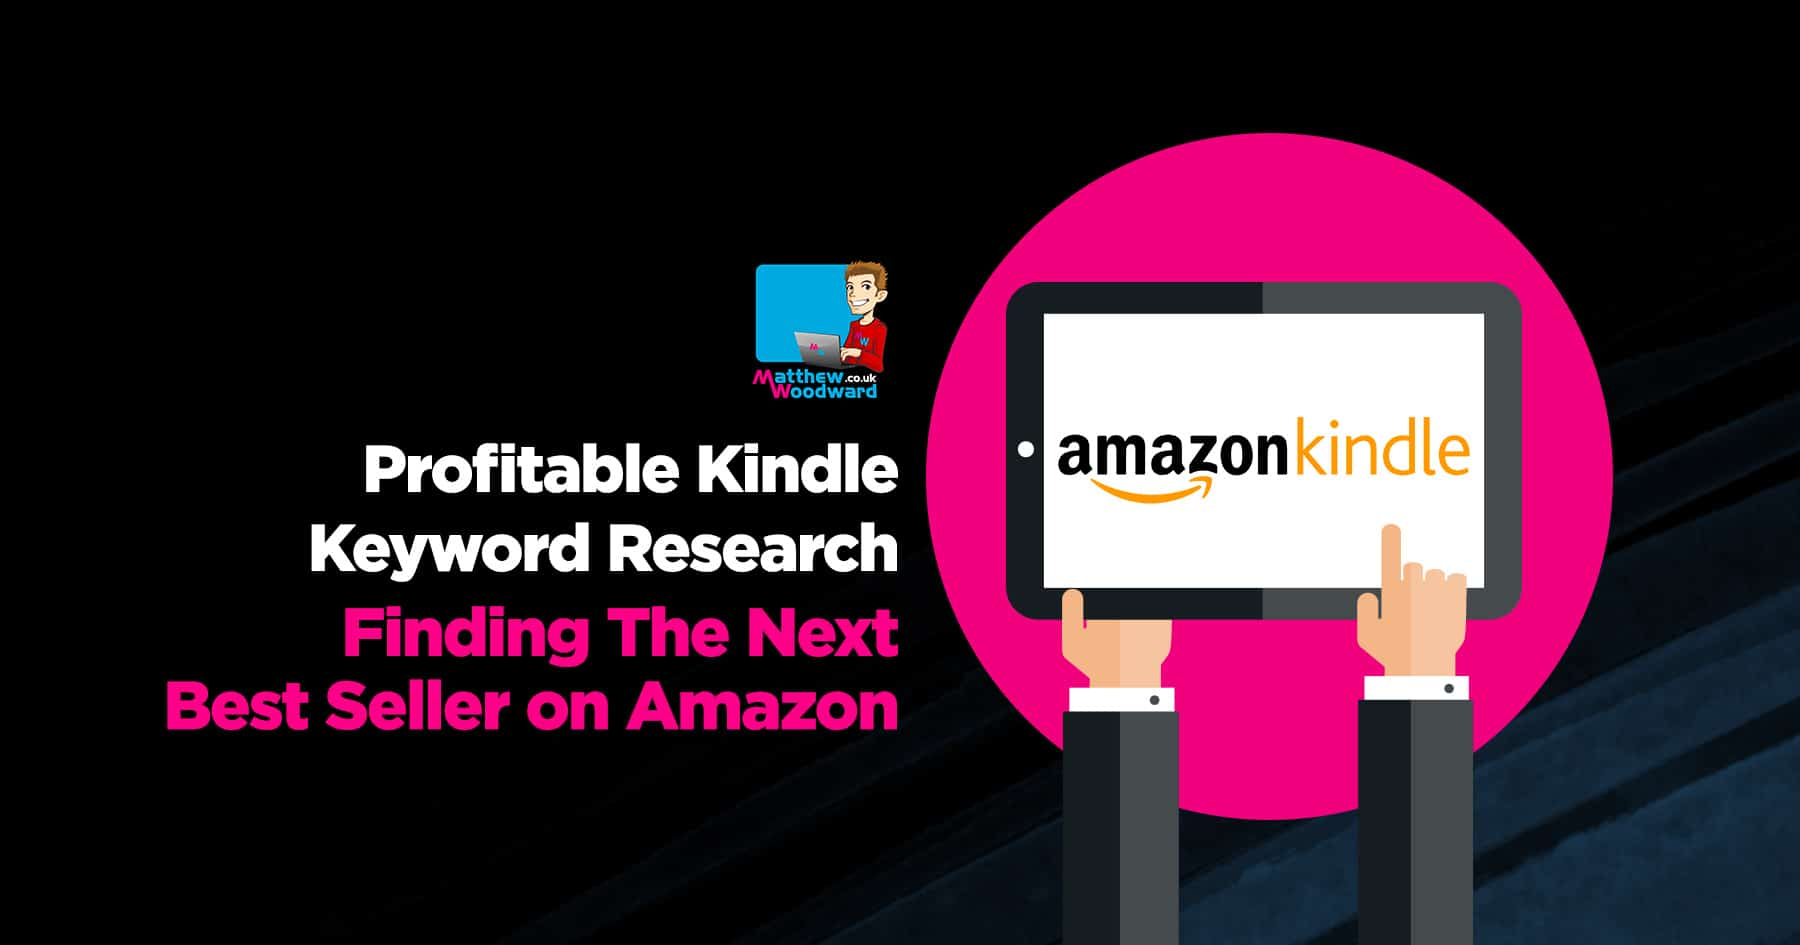 Profitable Kindle Keyword Research Finding The Next Best